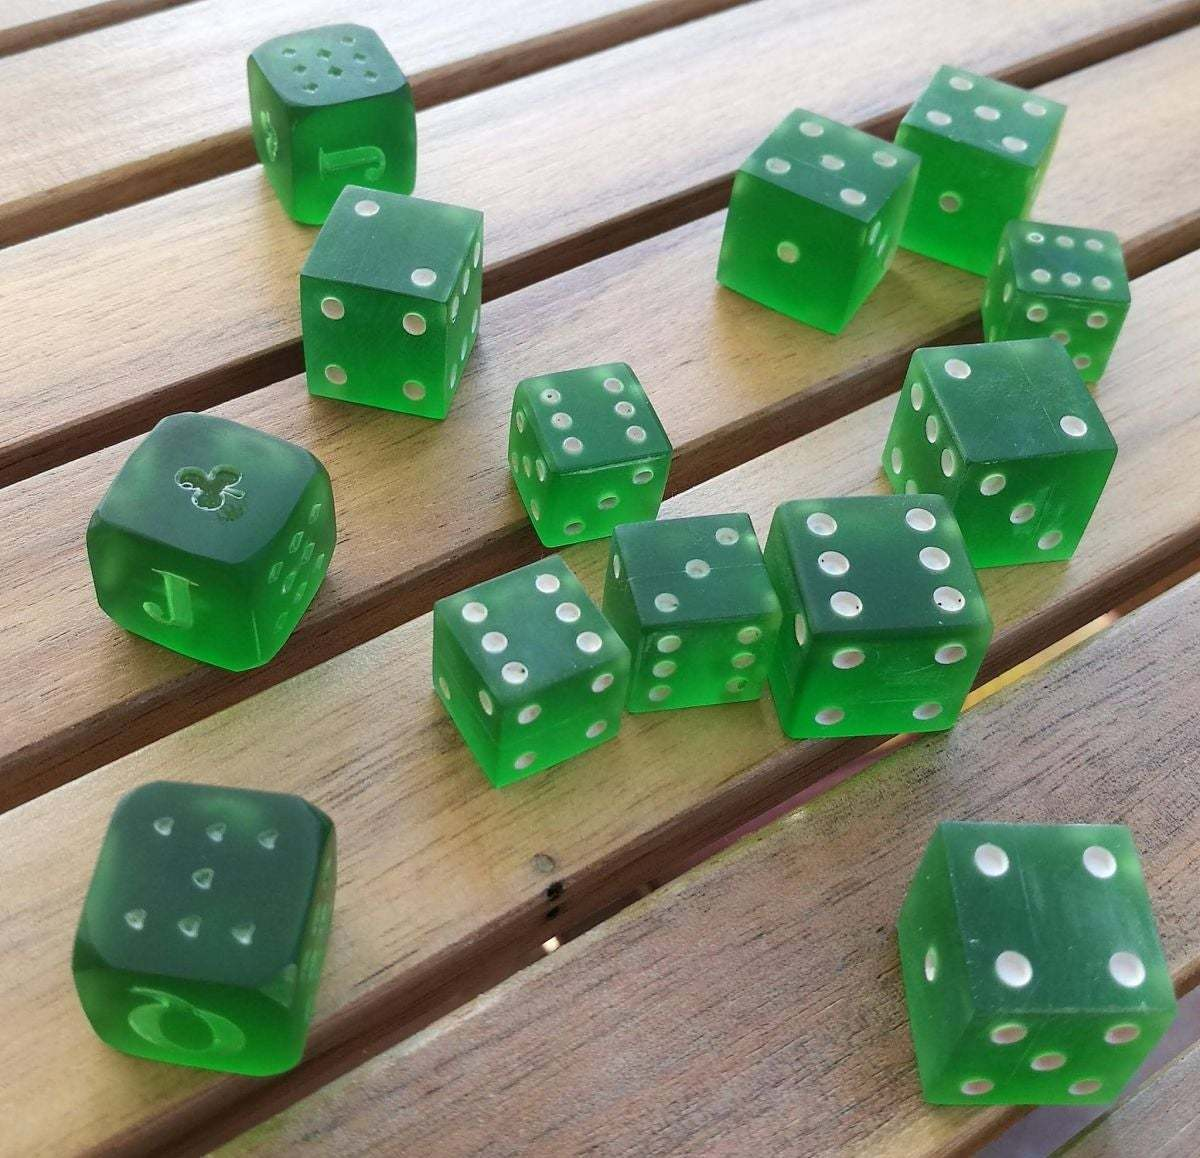 comp_opt.jpg Download STL file PARCHEESI DICE AND POKER • Design to 3D print, chocarrat